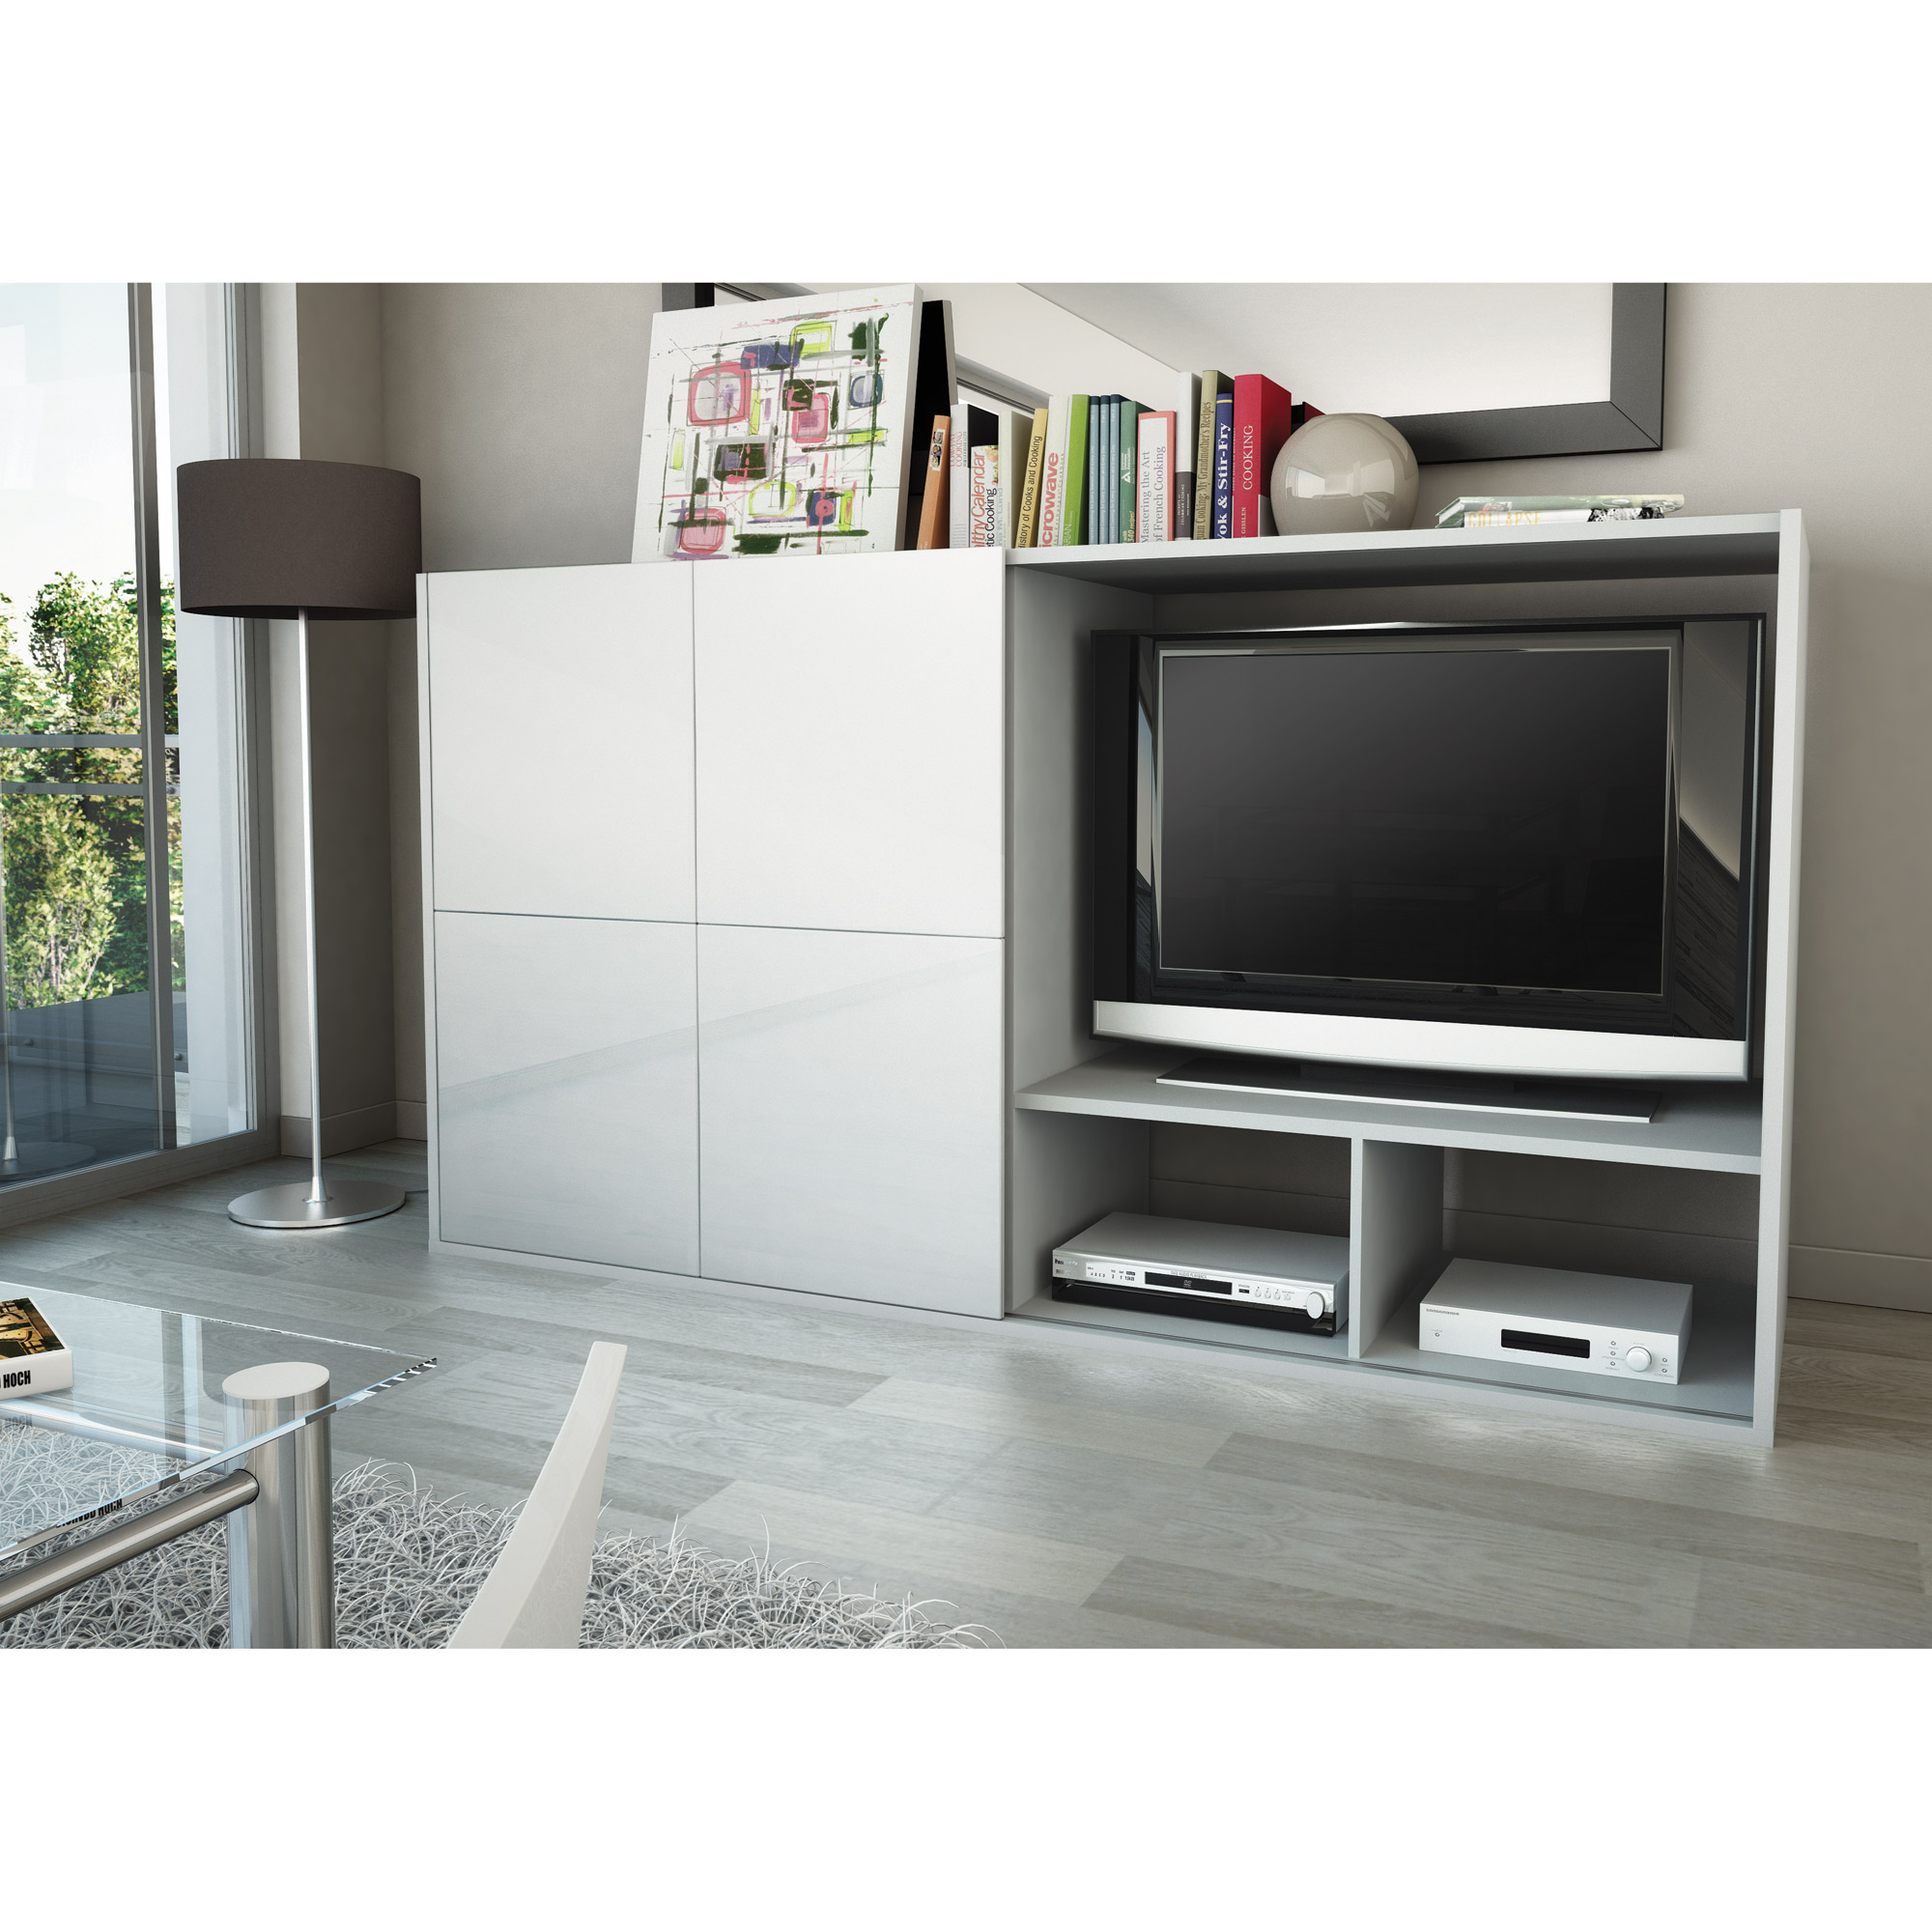 meuble tv porte coulissante id es de d coration. Black Bedroom Furniture Sets. Home Design Ideas